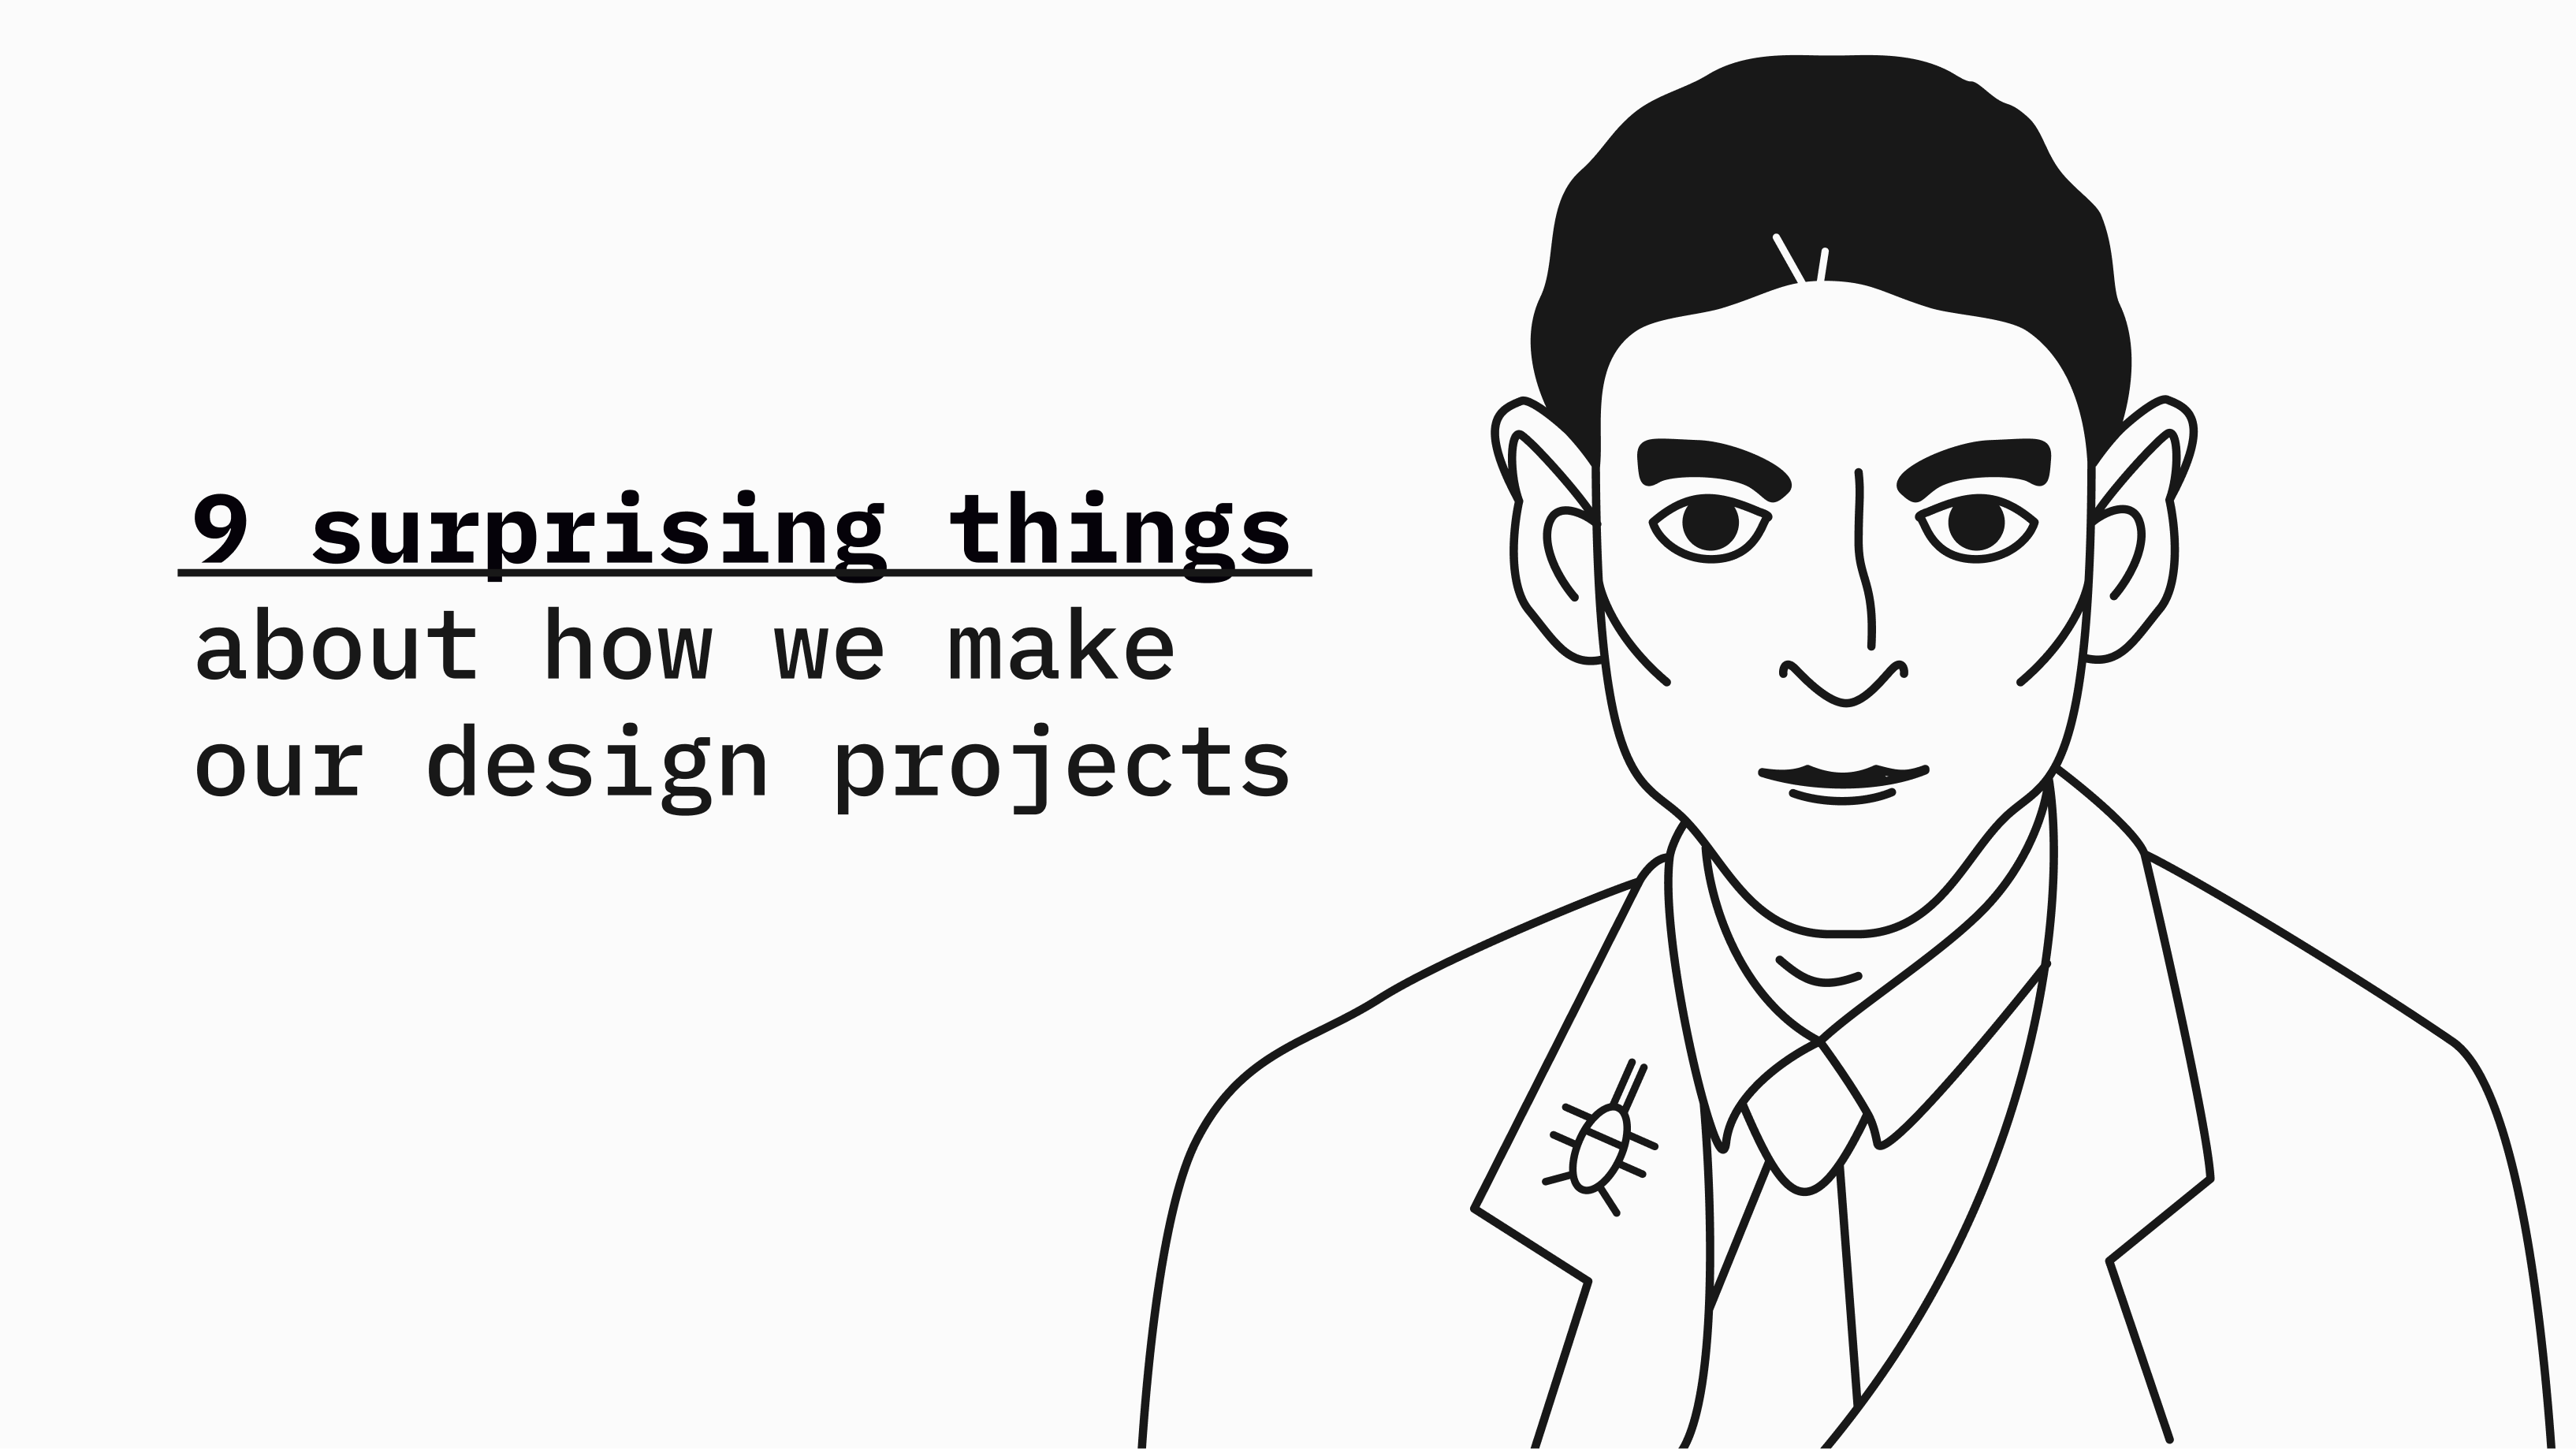 9surprising things about how we make our design projects